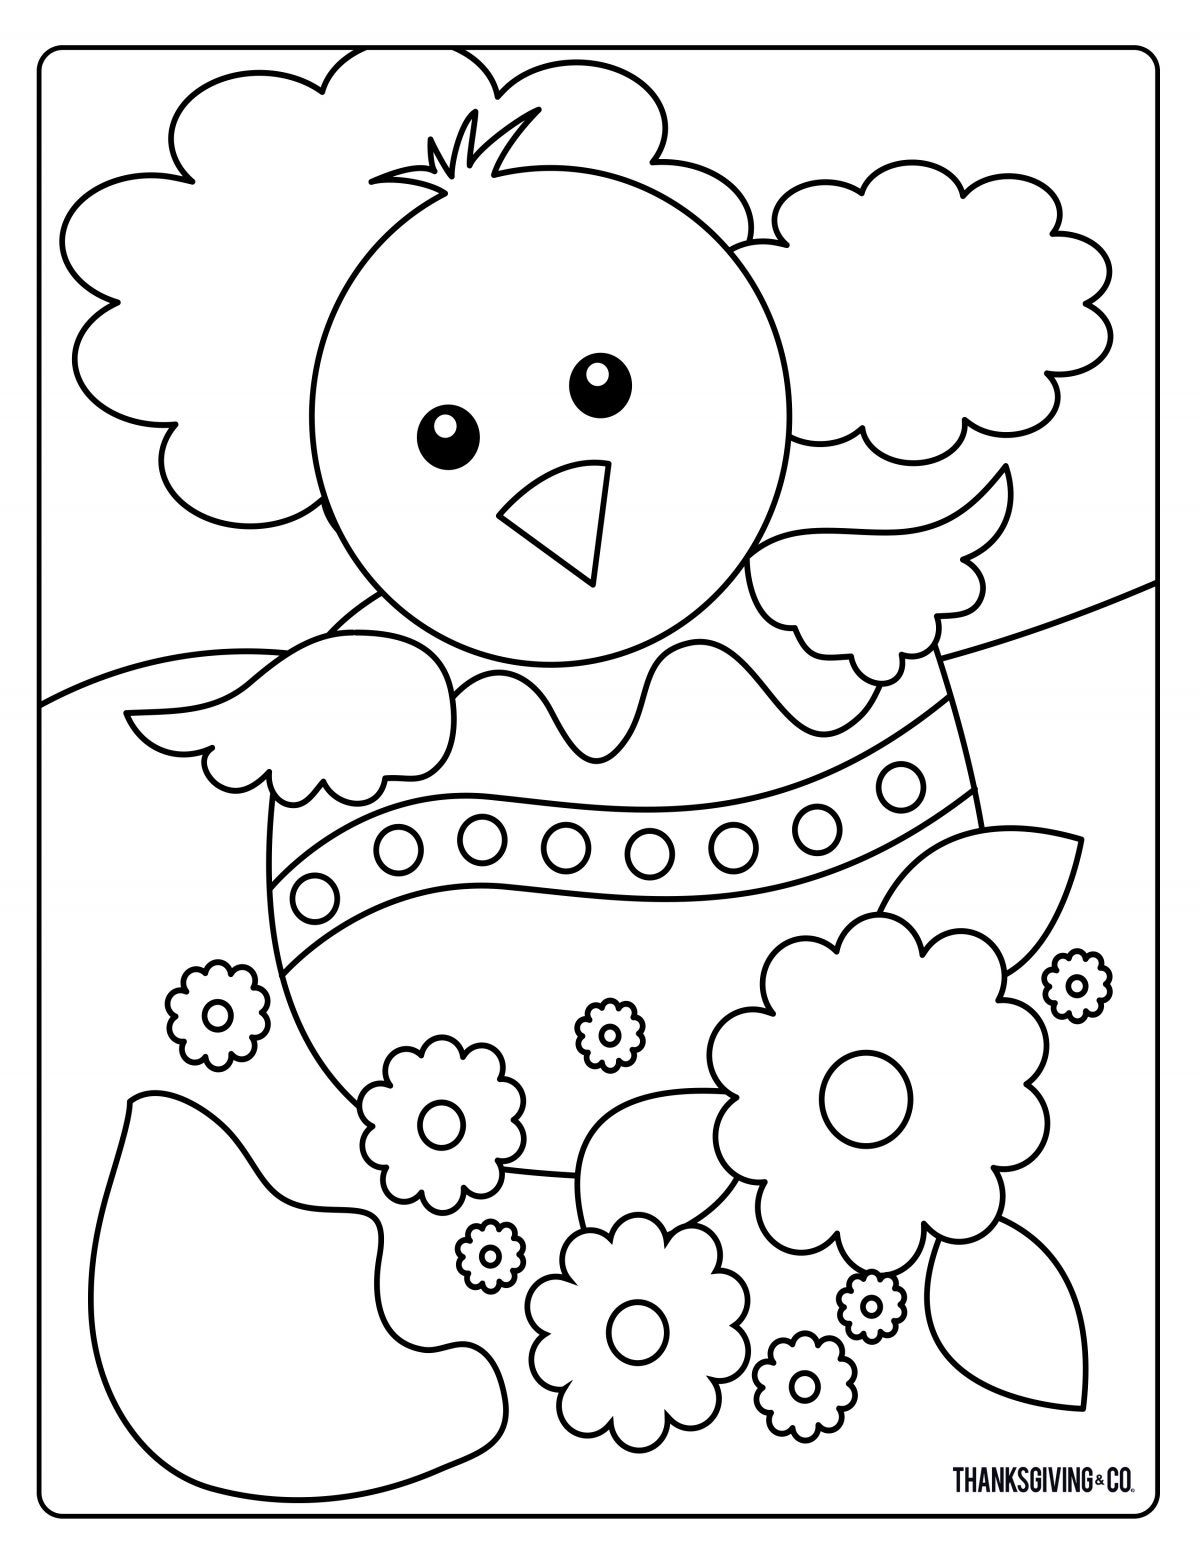 8 Free Printable Easter Coloring Pages Your Kids Will Love Easter Coloring Sheets Easter Coloring Book Easter Coloring Pages Printable